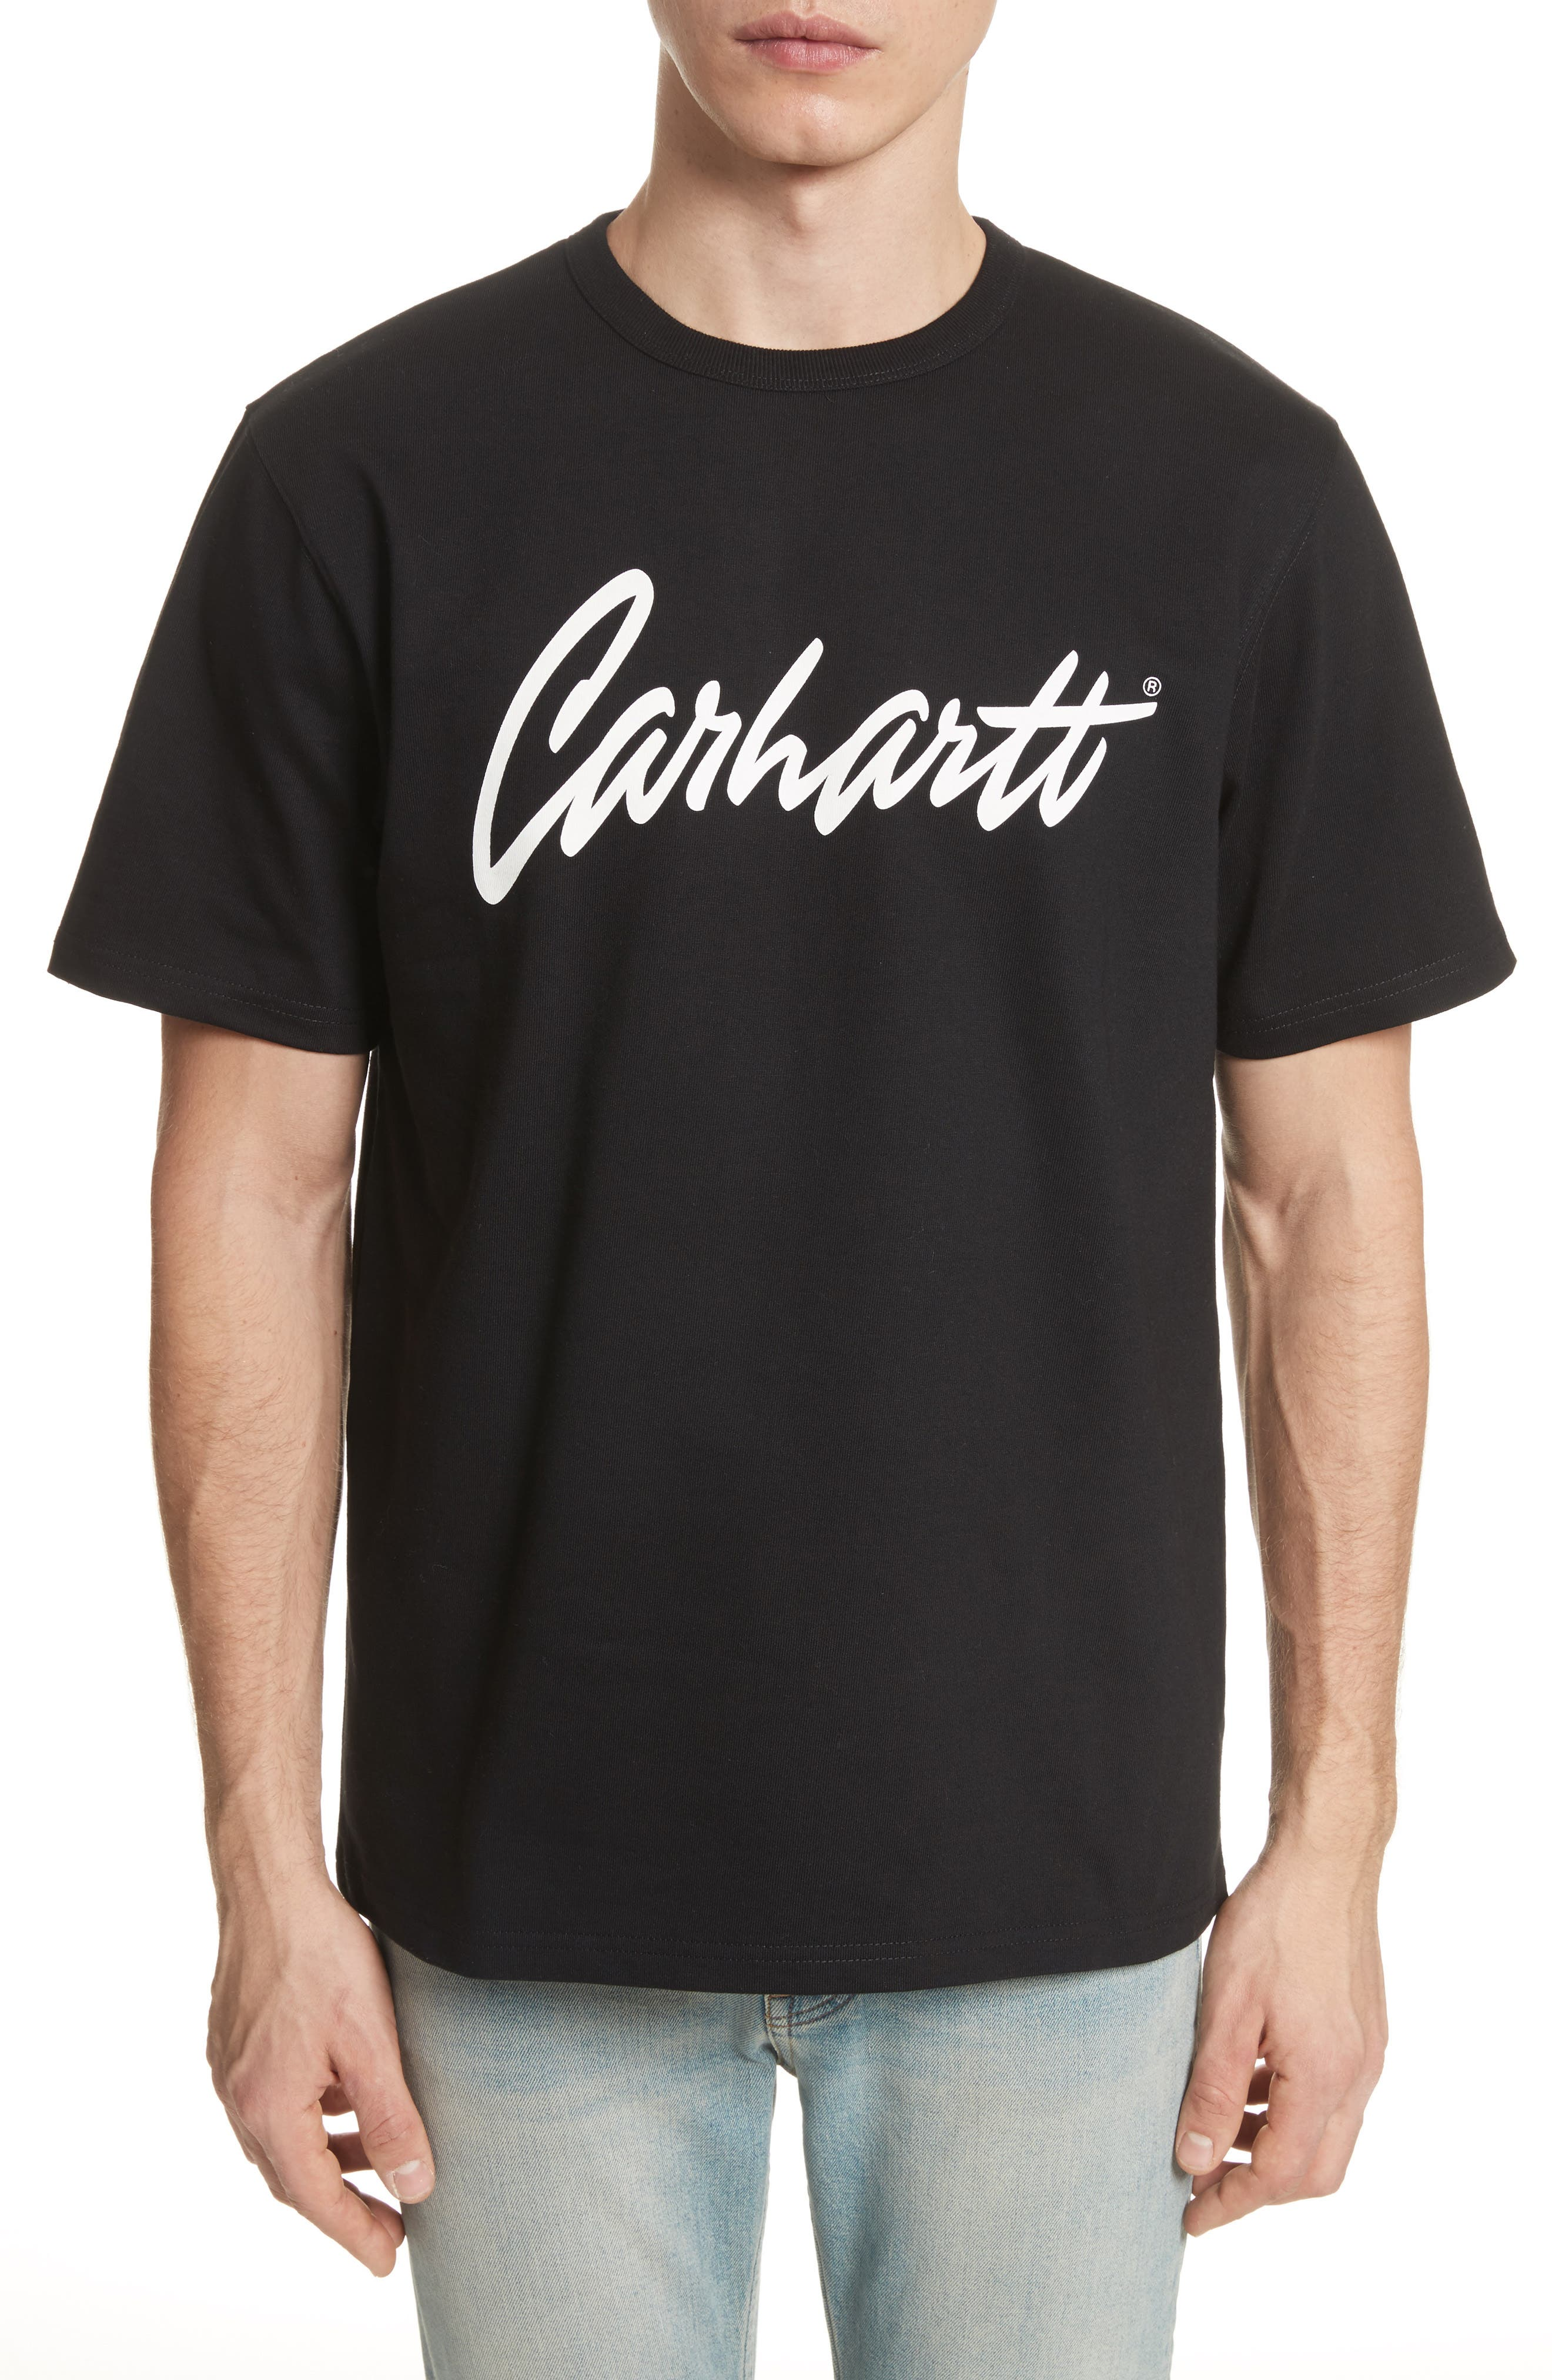 Alternate Image 1 Selected - Carhartt Work in Progress Stray Graphic T-Shirt